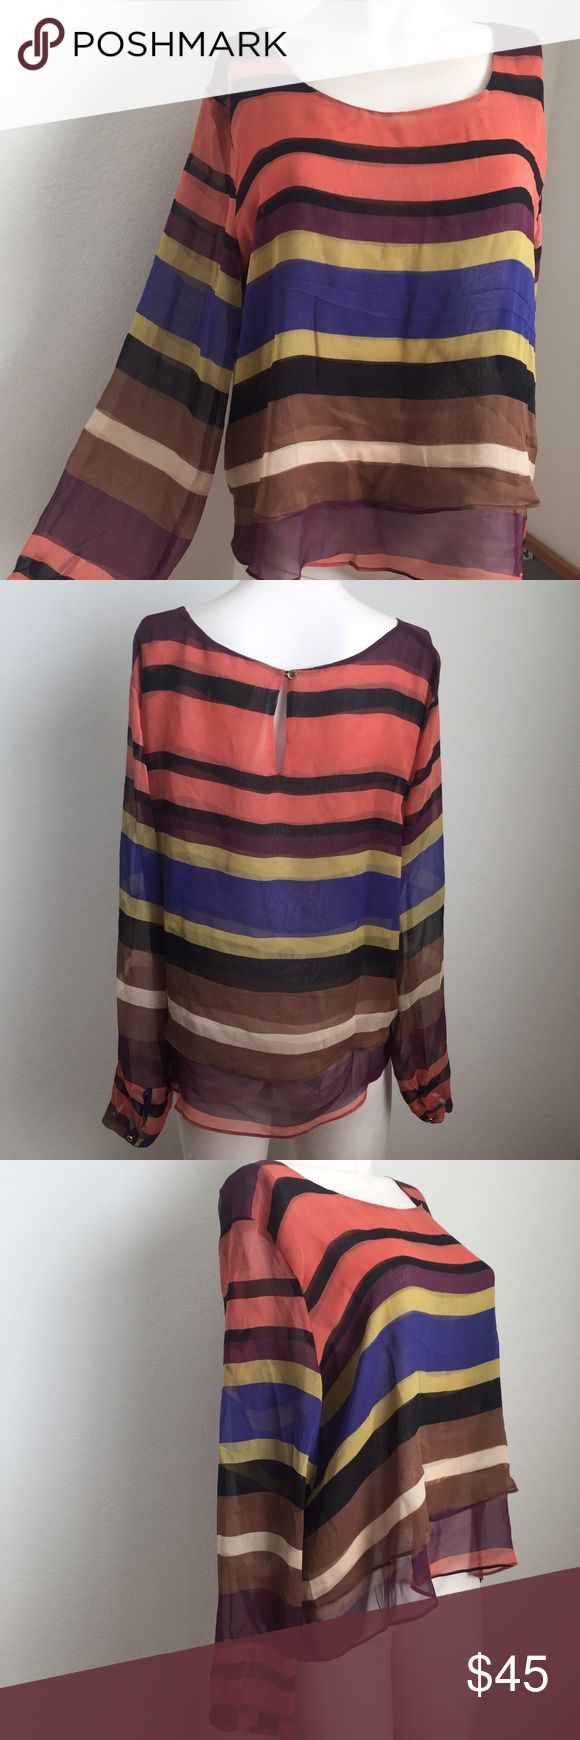 Anthropologie sheer colorful striped top Gorgeous sheer colorful striped top by Maeve from Anthropologie. Button closure on back. Second layer of fabric in the front. Adds a pop of color to your outfit! Pair with a chunky gold necklace, distressed denim, and chunky boots! Anthropologie Tops